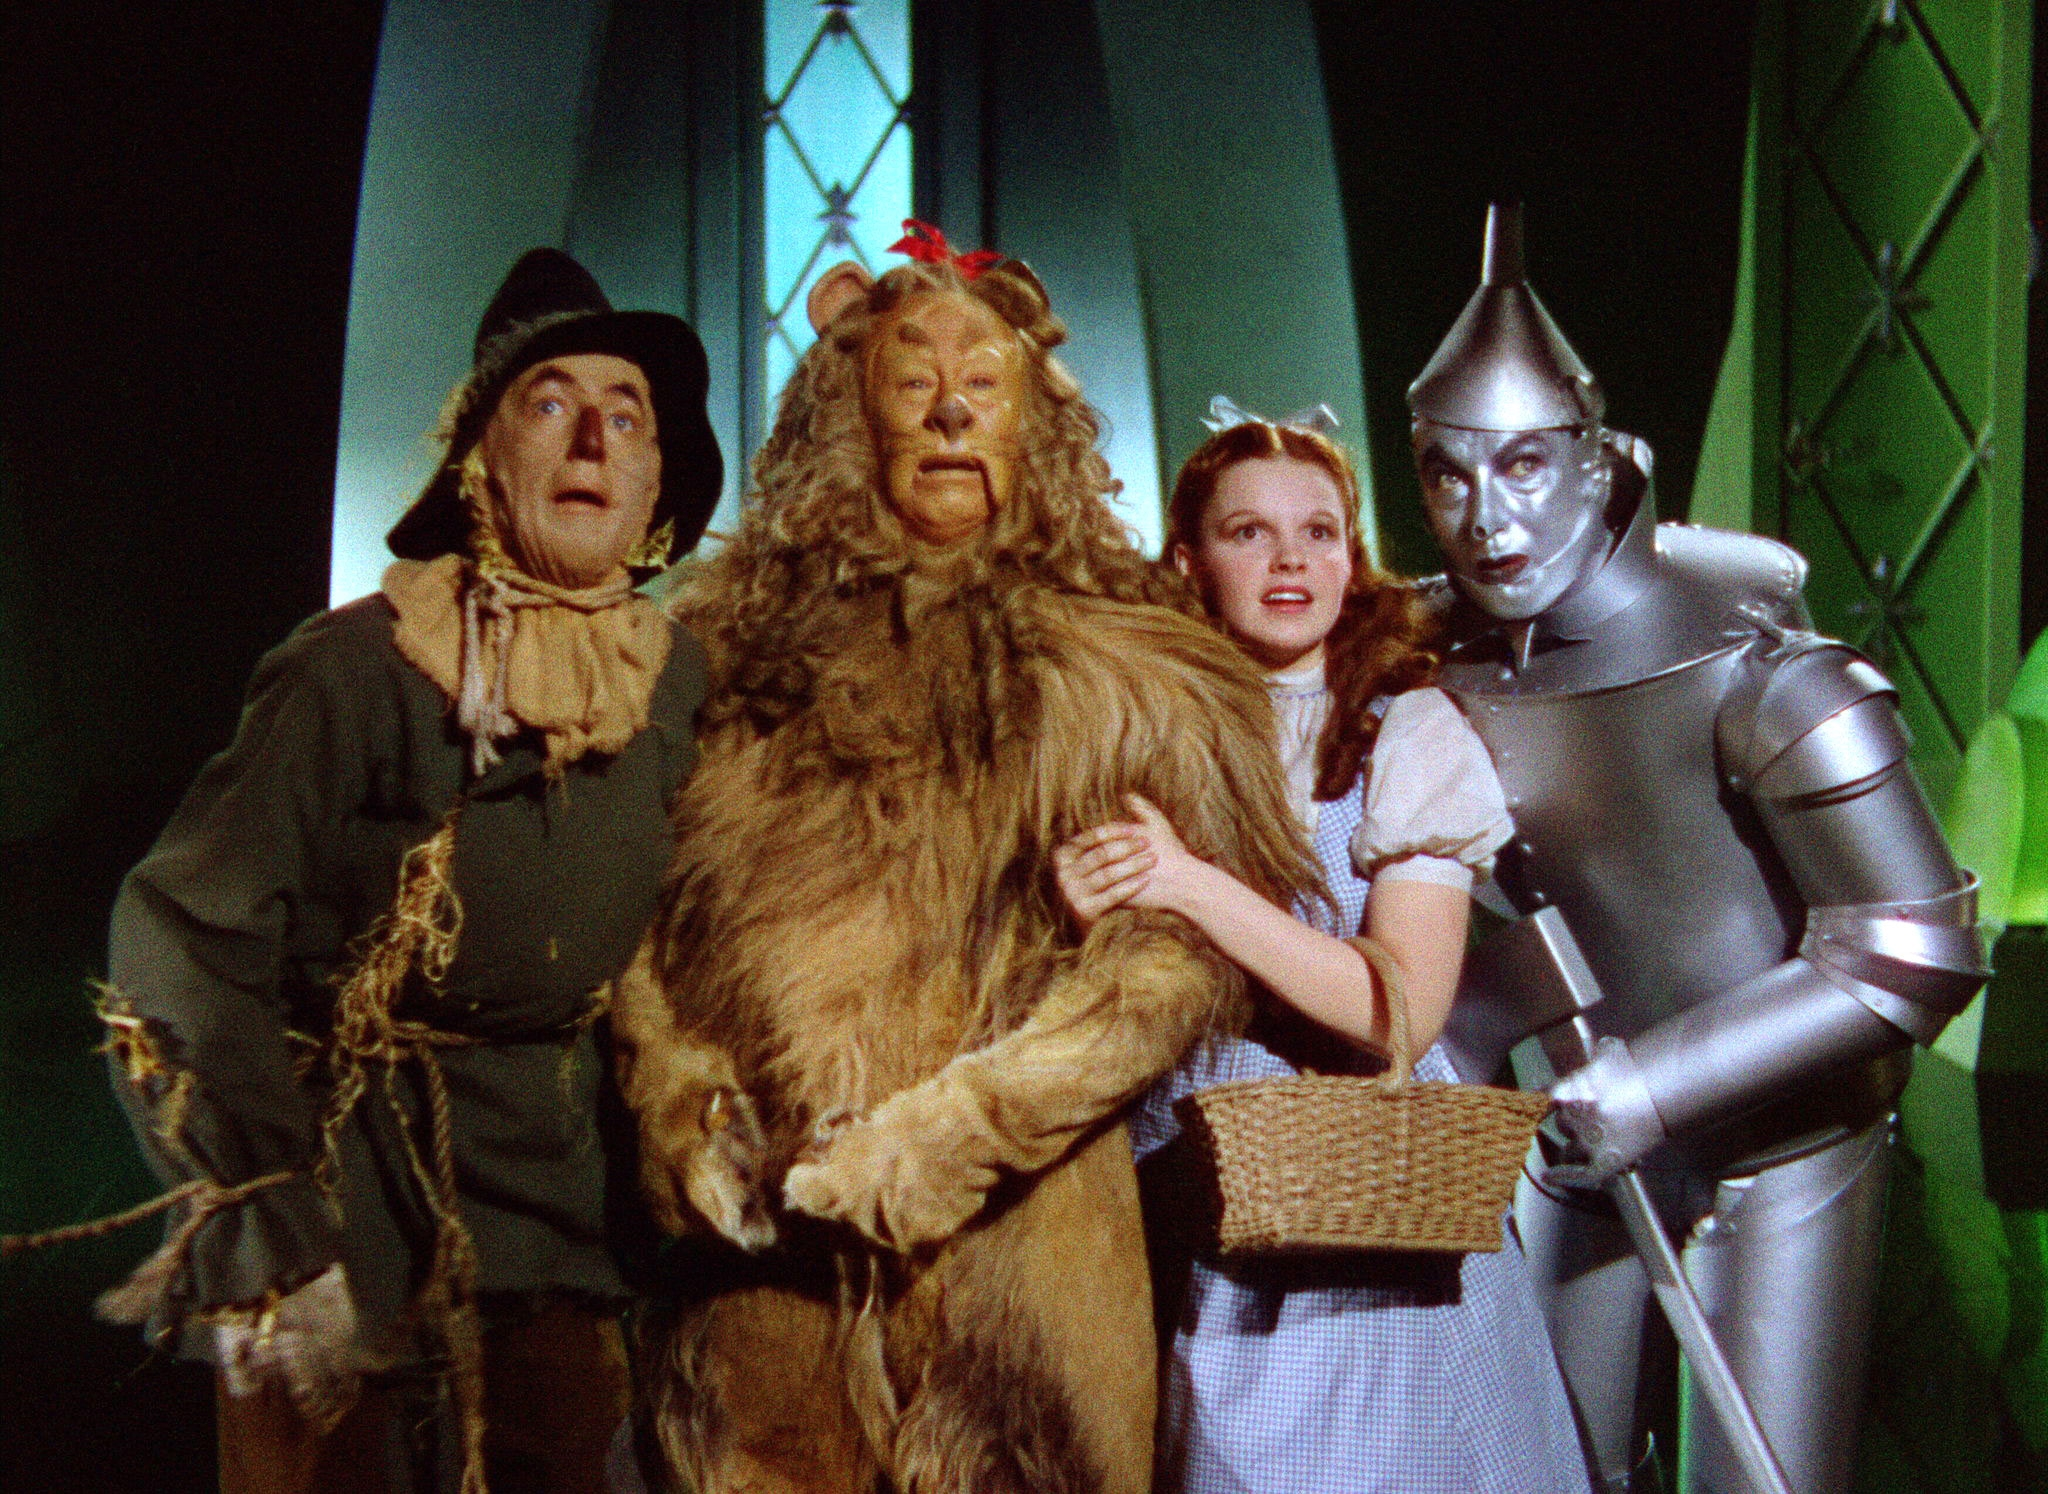 the wizard of oz as a The wizard of oz as a monetary allegory hugh rockoff rutgers university the wonderful wizard of oz, perhaps america's favorite children's story, is also an informed.